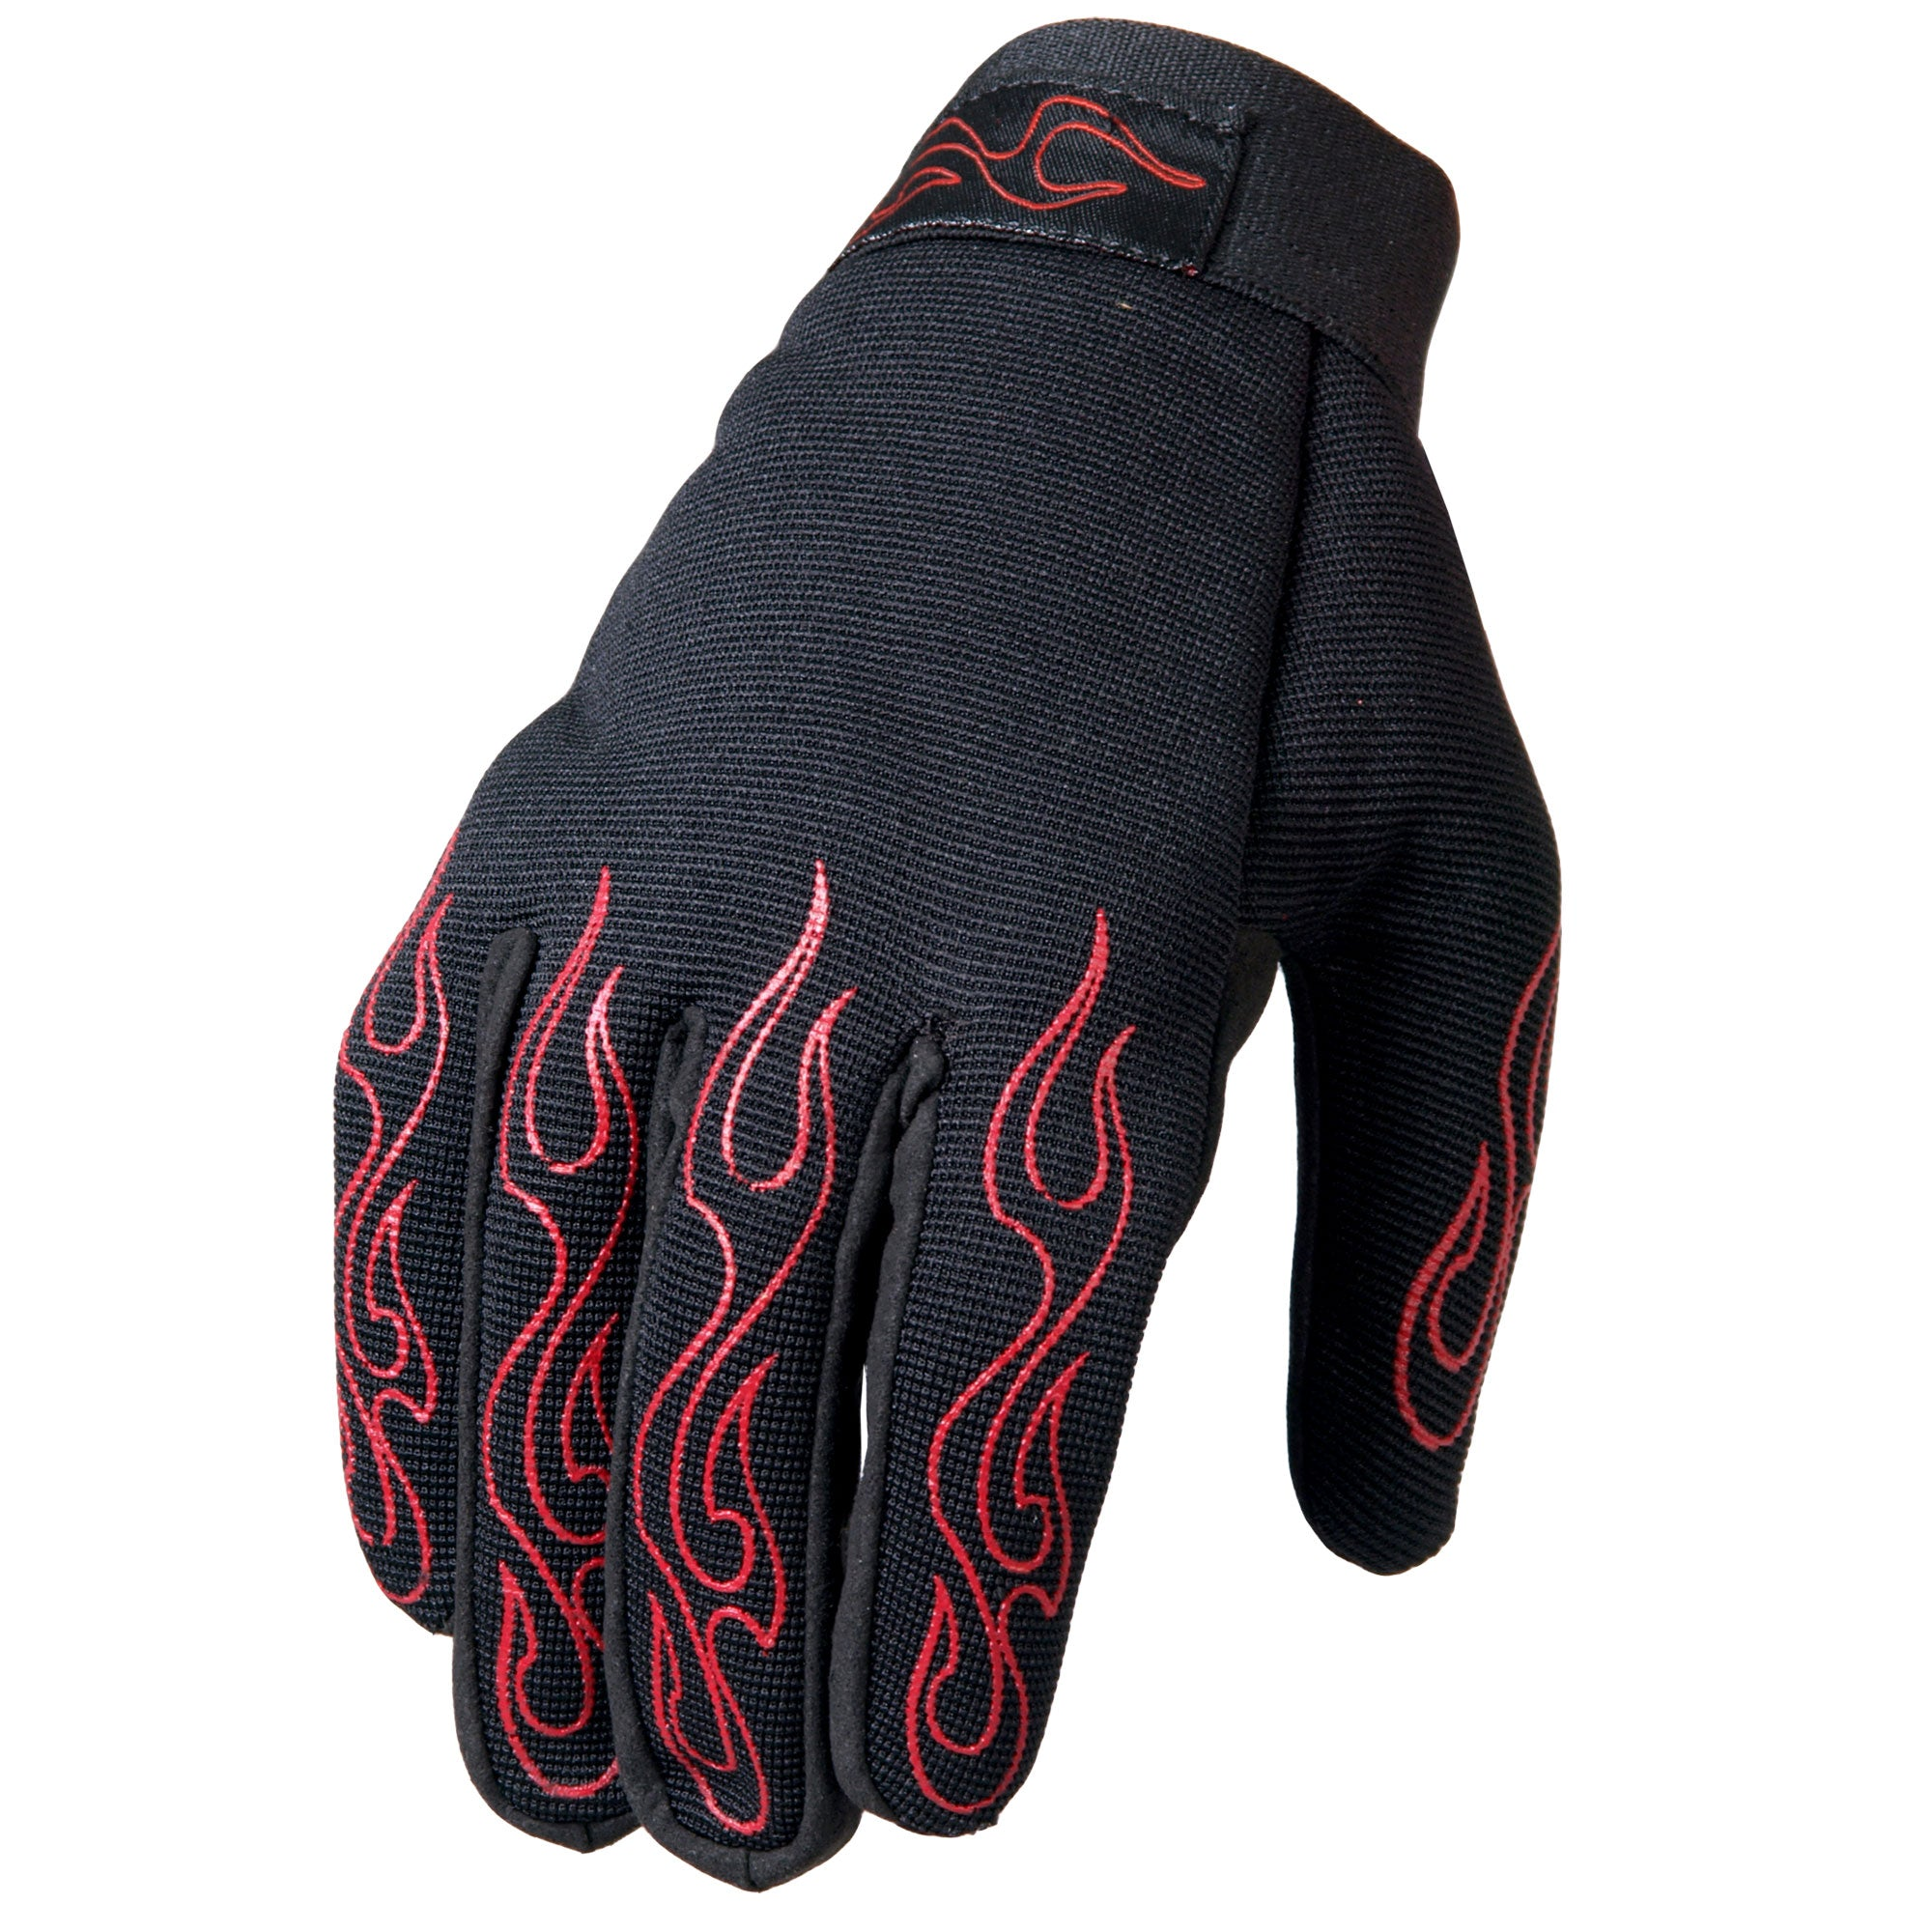 Hot Leathers Mechanic's Gloves with Red Flames